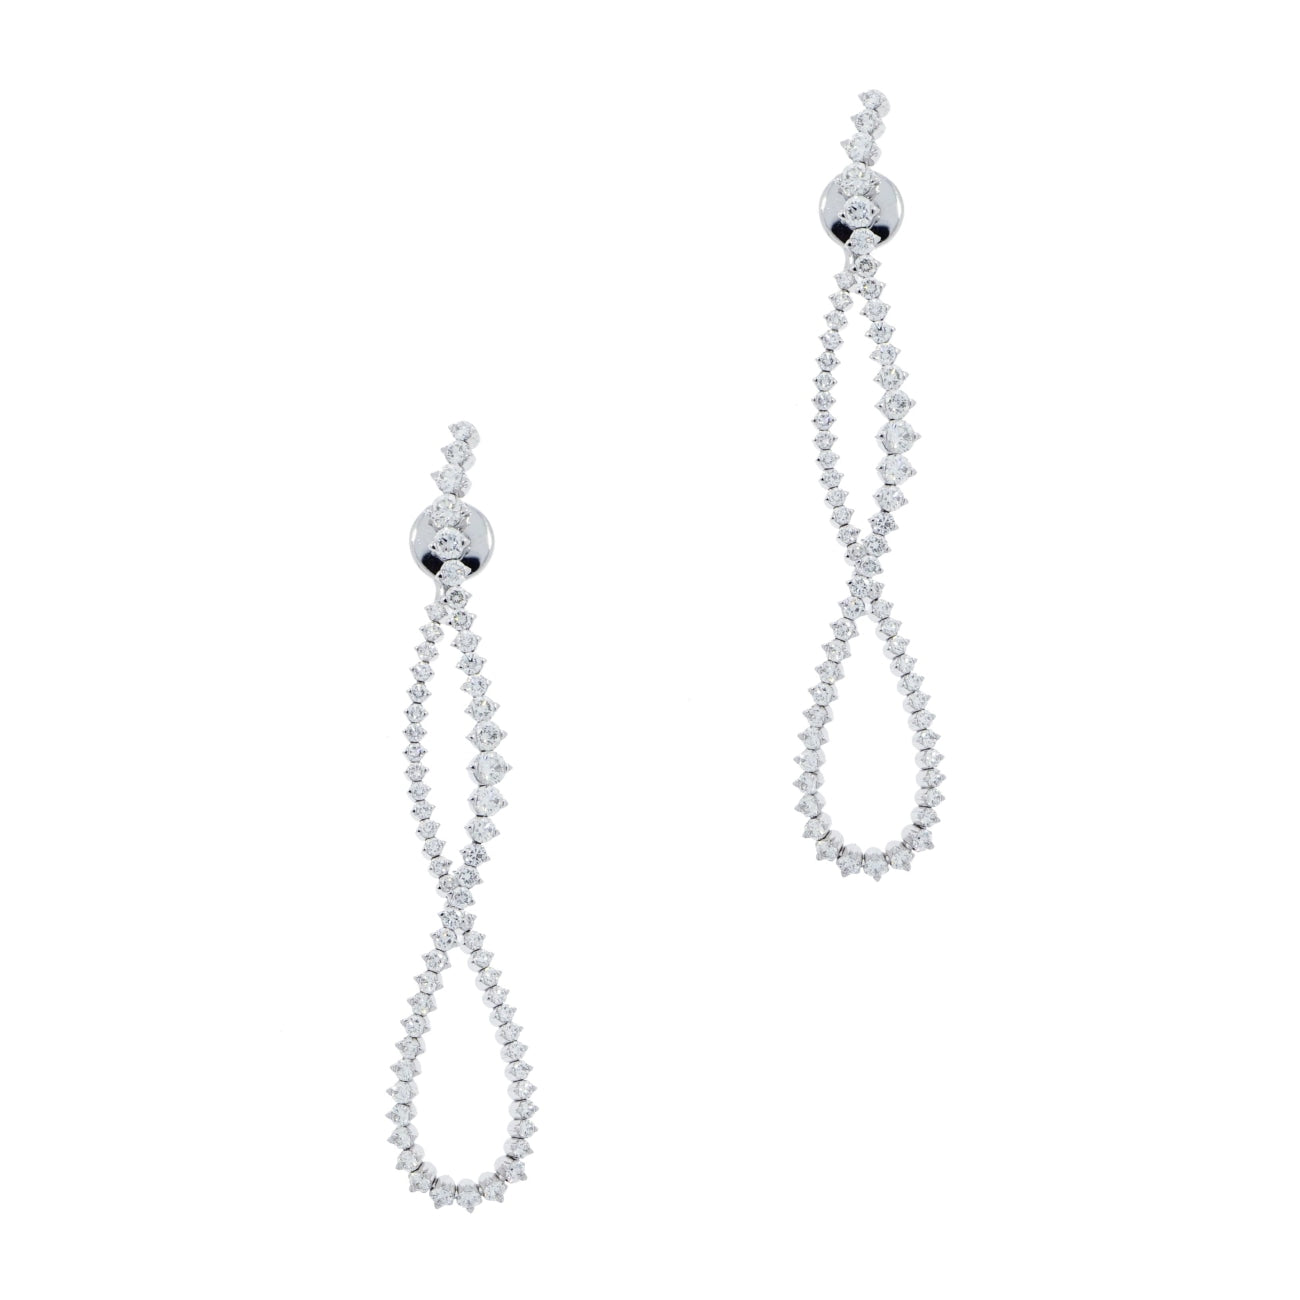 New Italian Art Jewelry - Long Twisted Diamond Earring | Manfredi Jewels